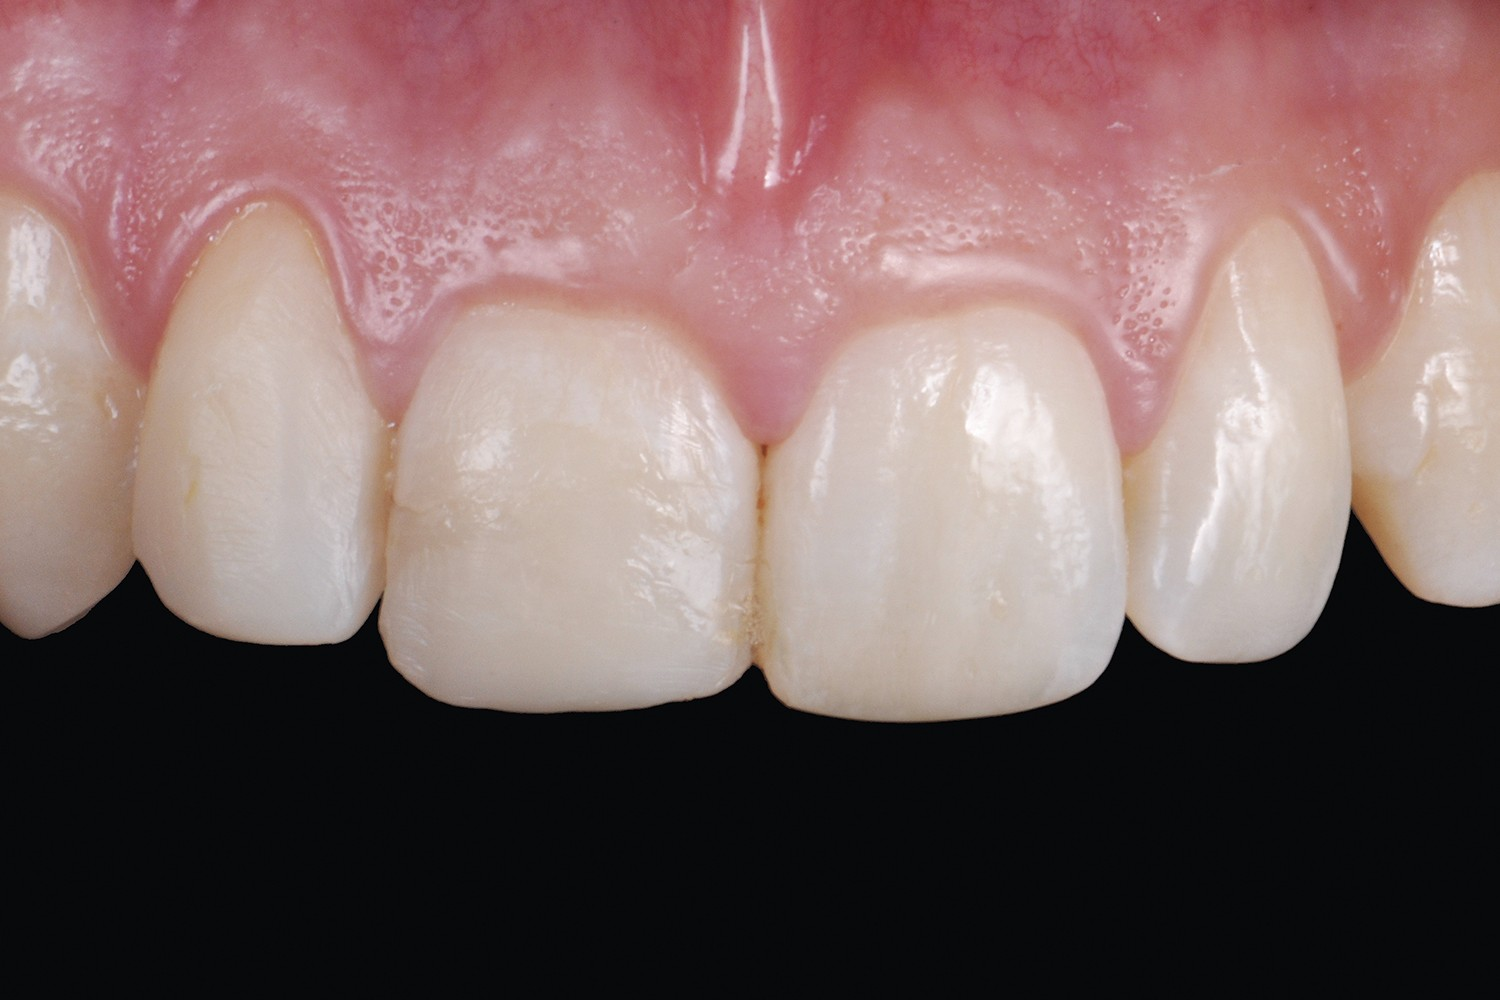 Anterior traumatic dental injuries: Ultra-conservative treatment